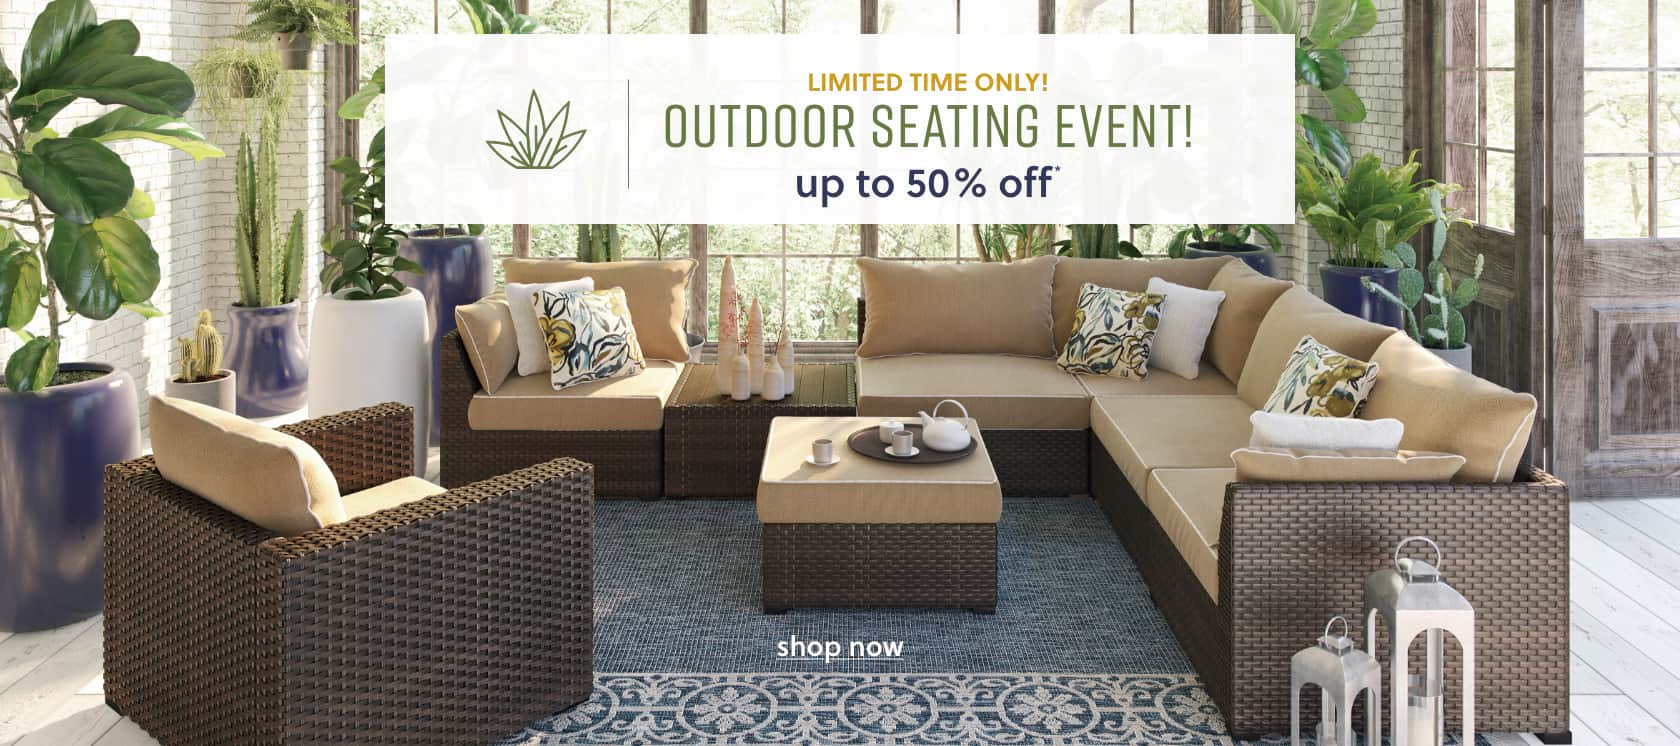 Discount Furniture Online Outlet